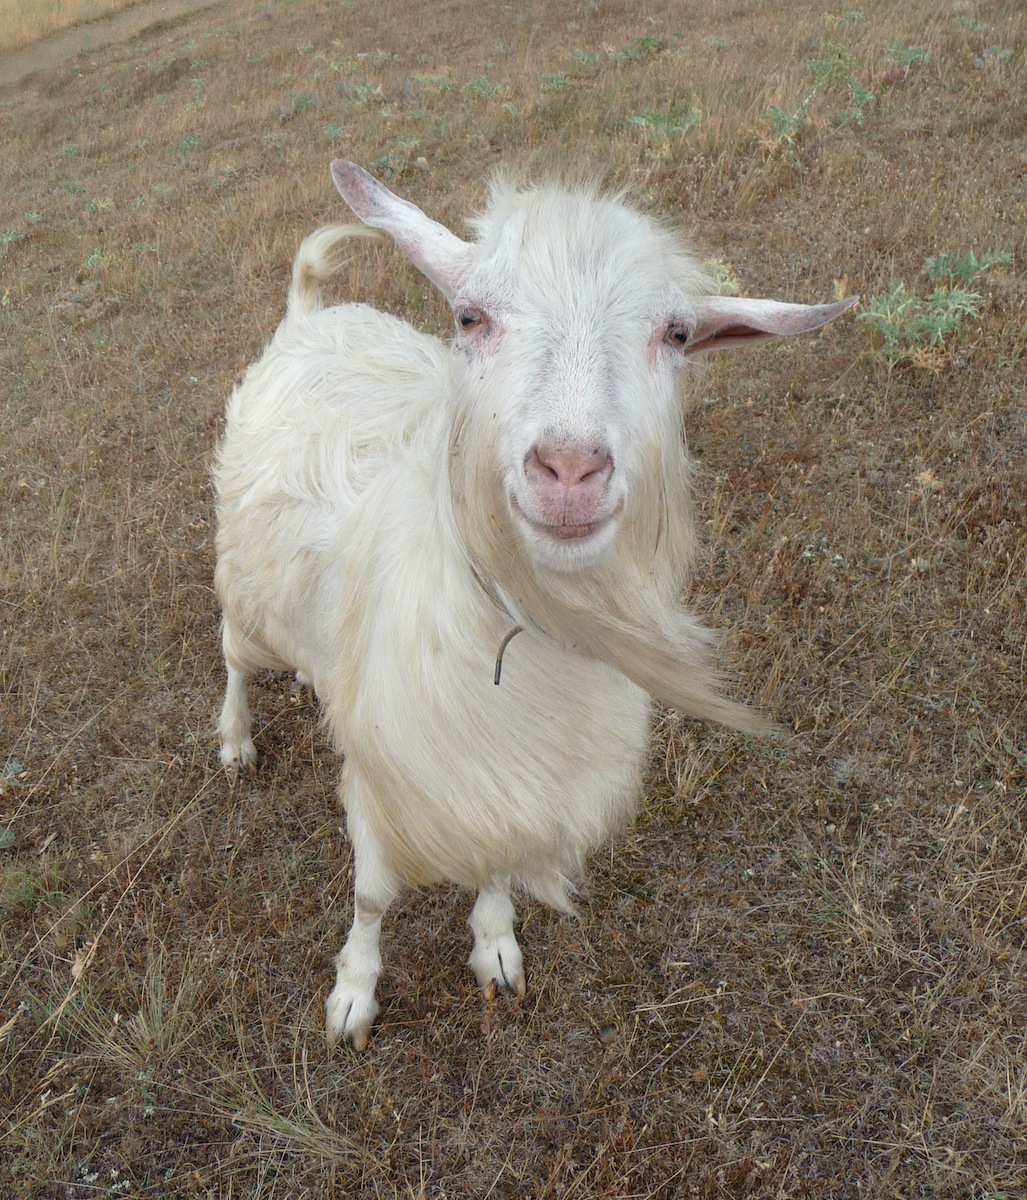 Domestic goat smile, Crimea, 2009. By George Chernilevsky. Public Domain